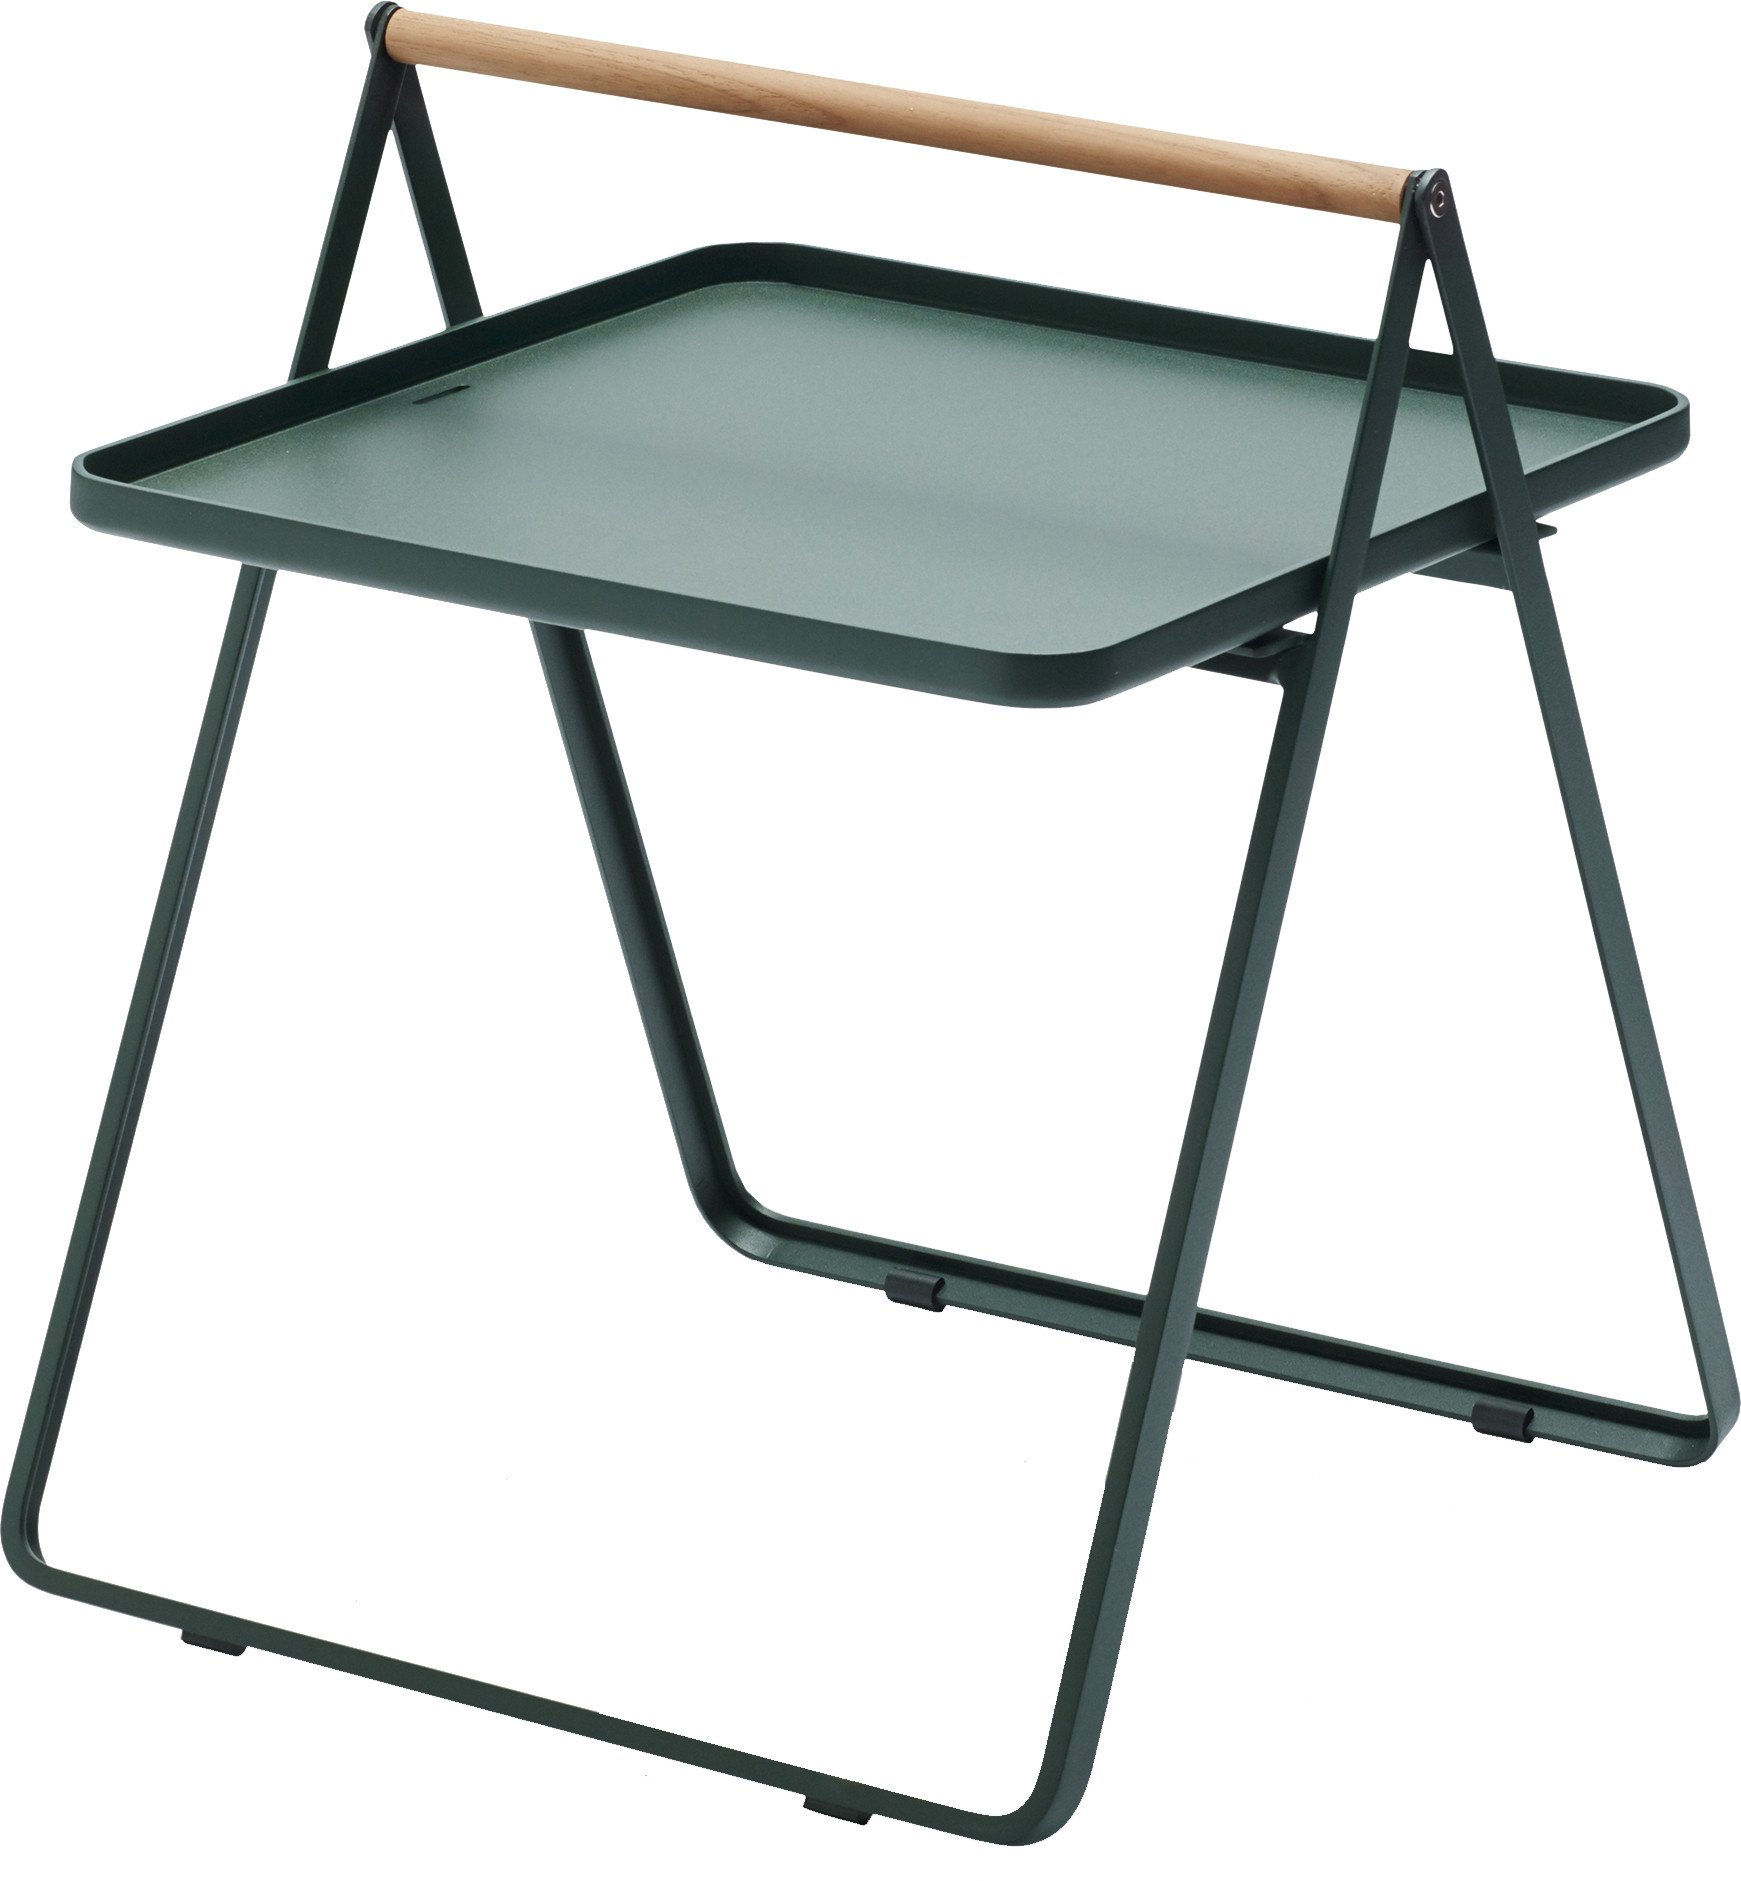 By Your Side Table Green, by M. Schmahl for Skagerak